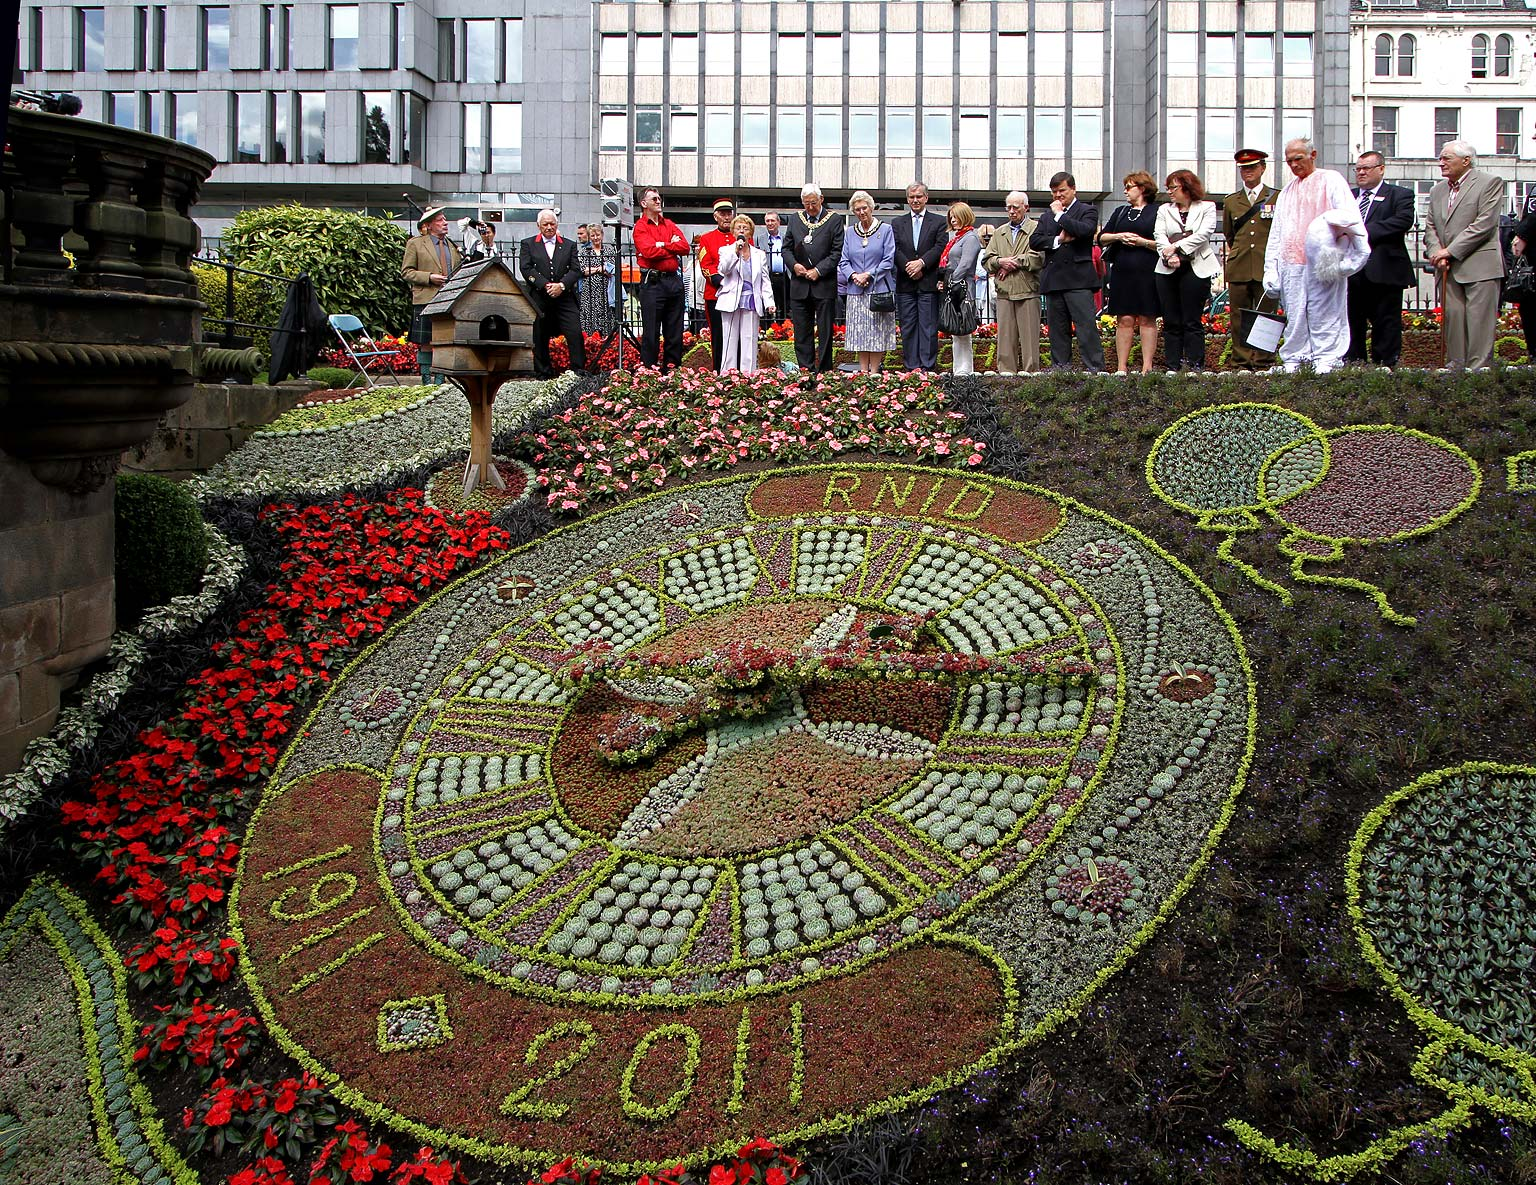 Floral Clock in Princes Street Gardens - August 2011